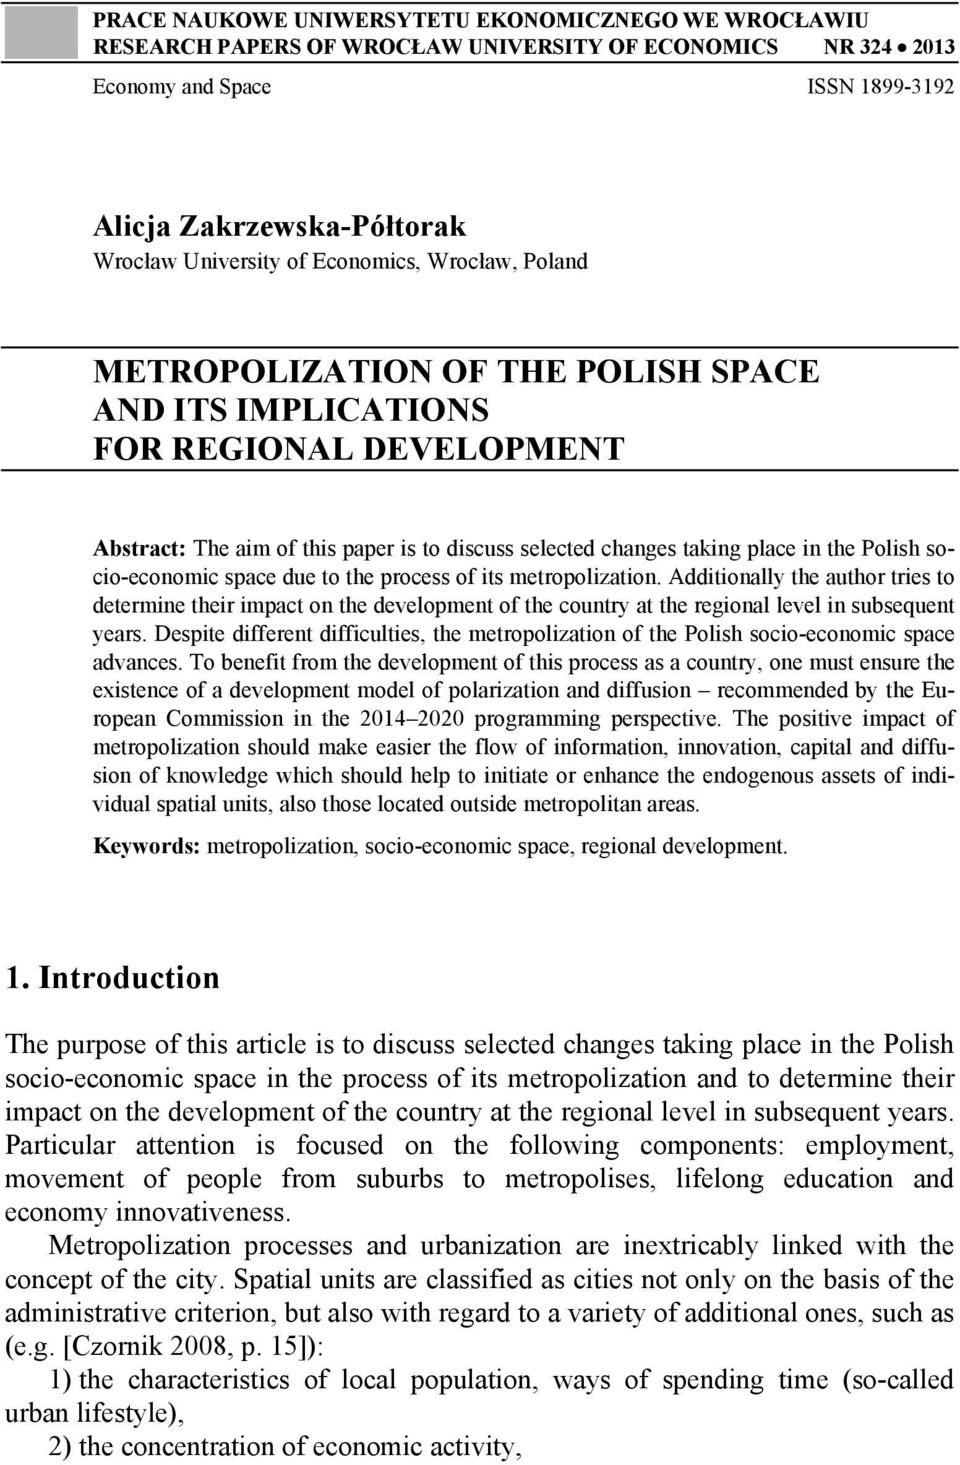 socio-economic space due to the process of its metropolization. Additionally the author tries to determine their impact on the development of the country at the regional level in subsequent years.